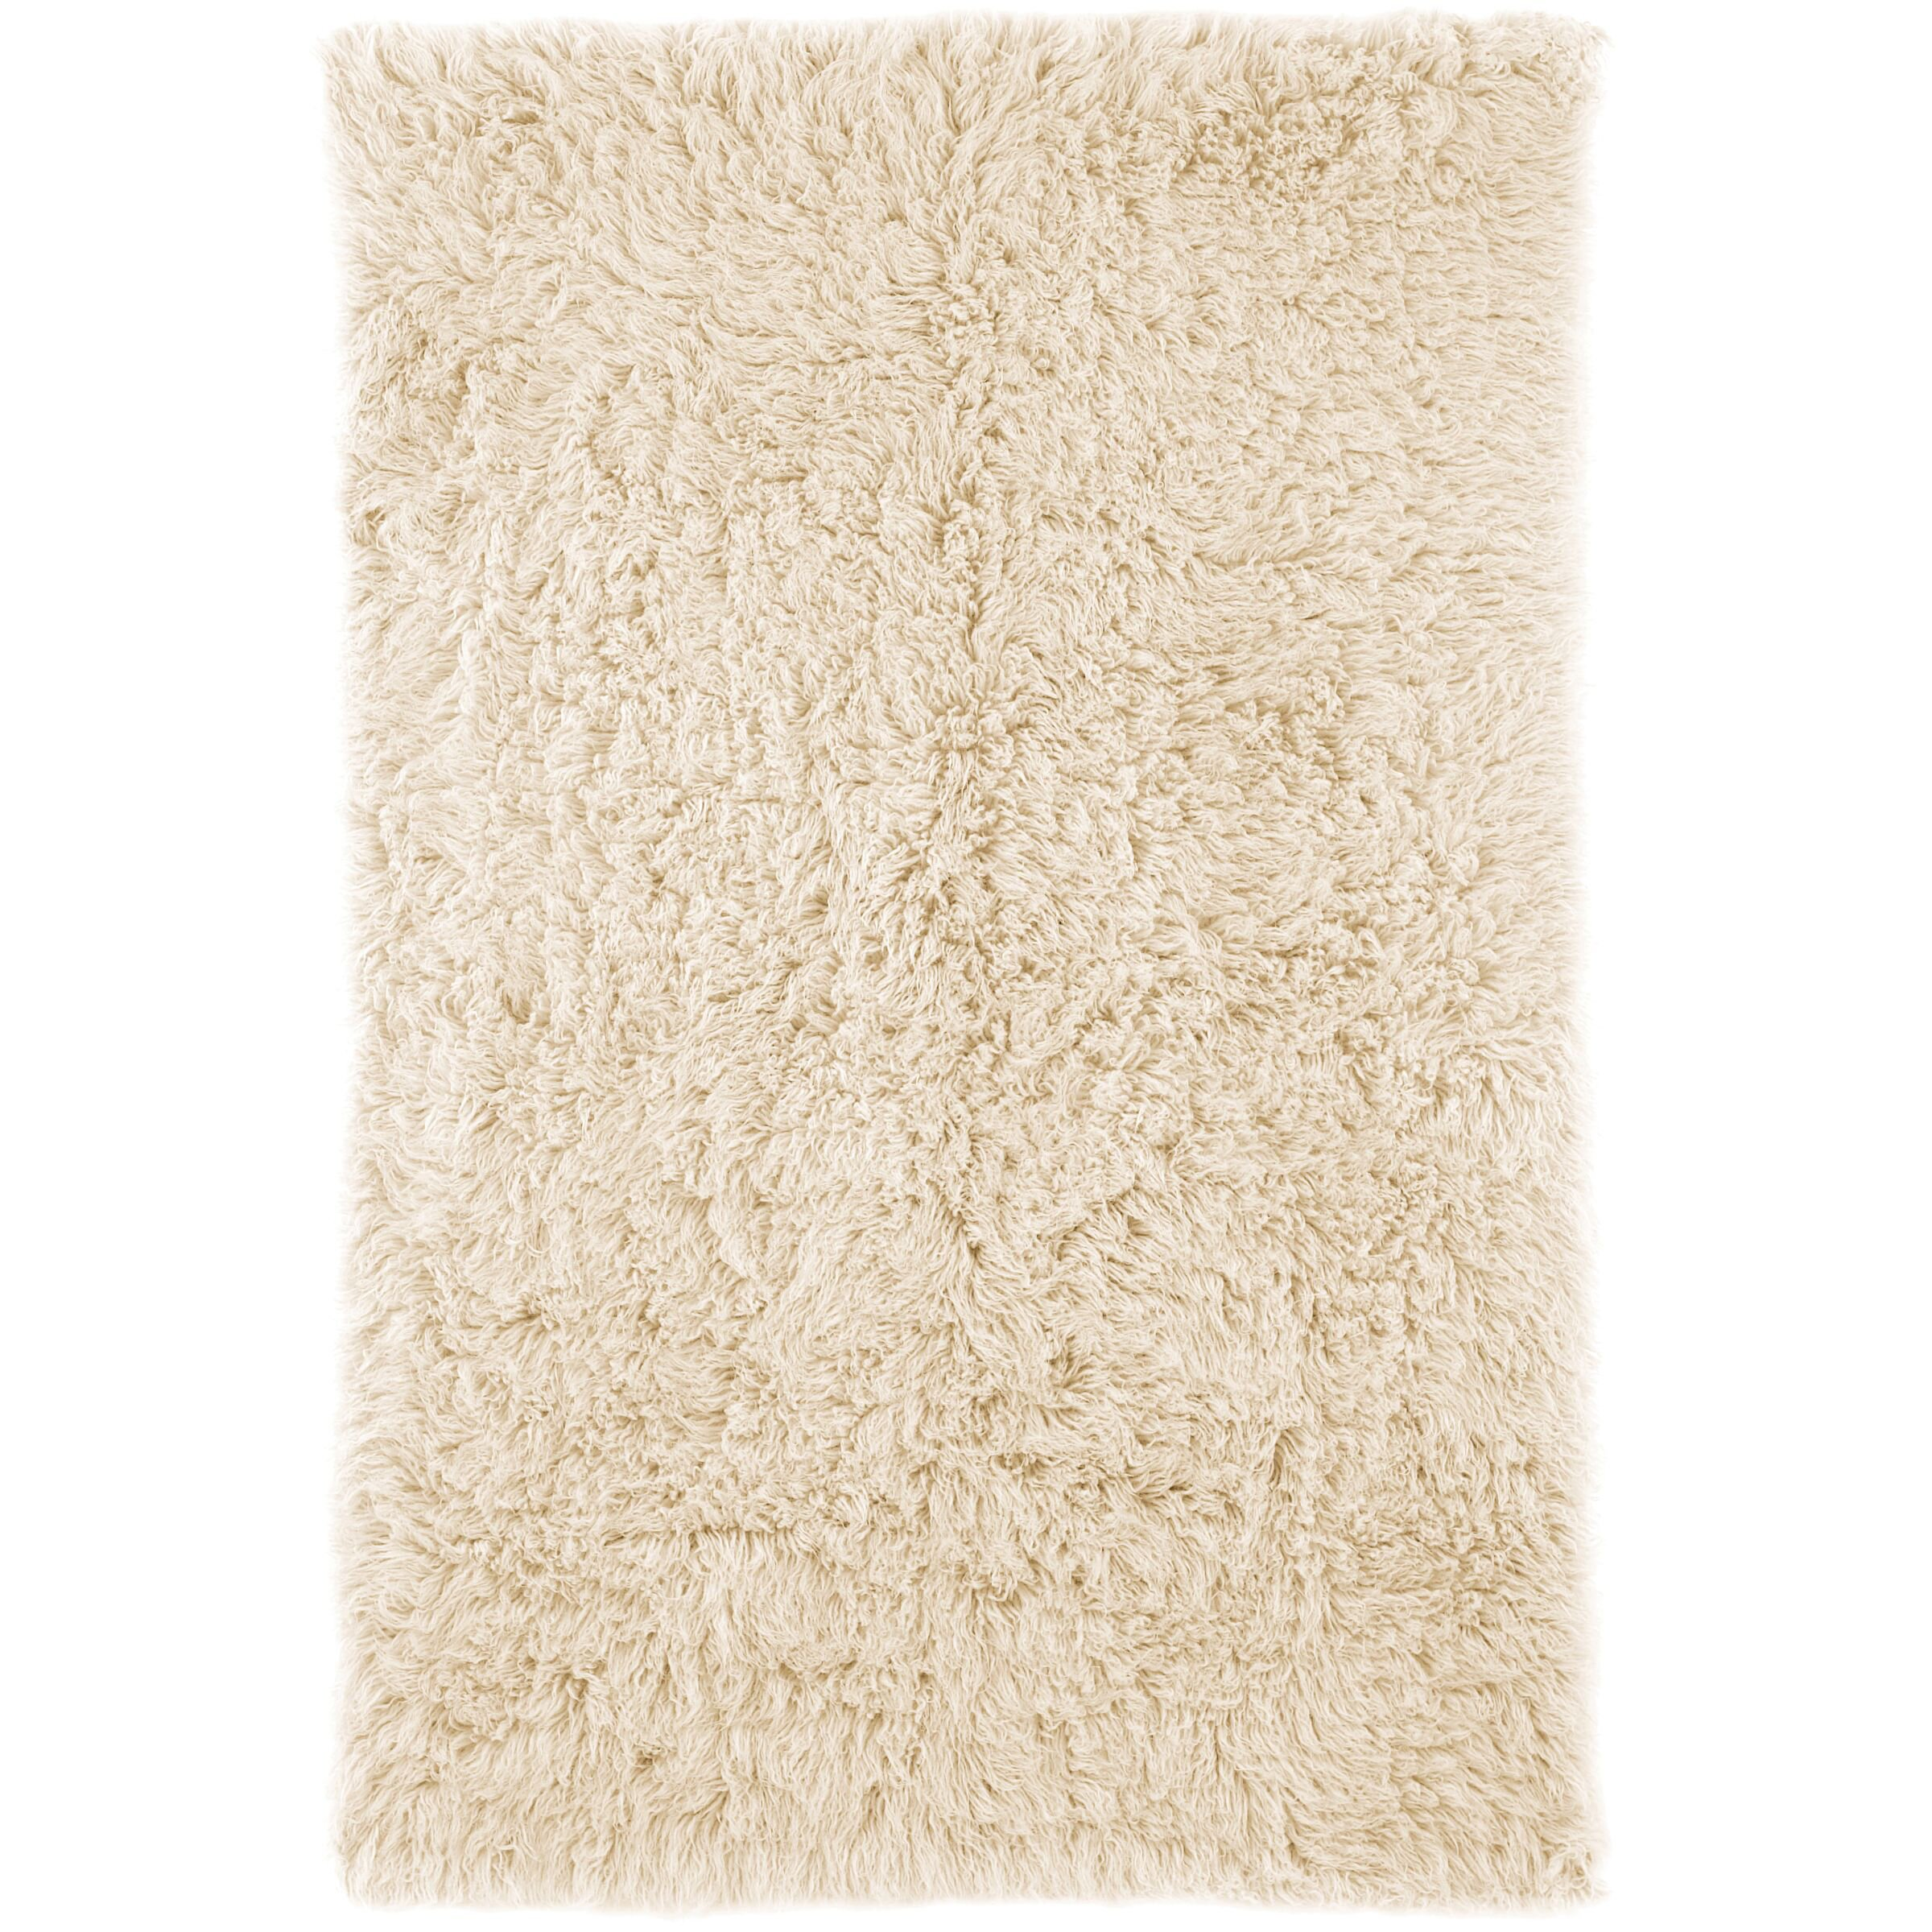 Nuloom Flokati Natural Area Rug Amp Reviews Wayfair